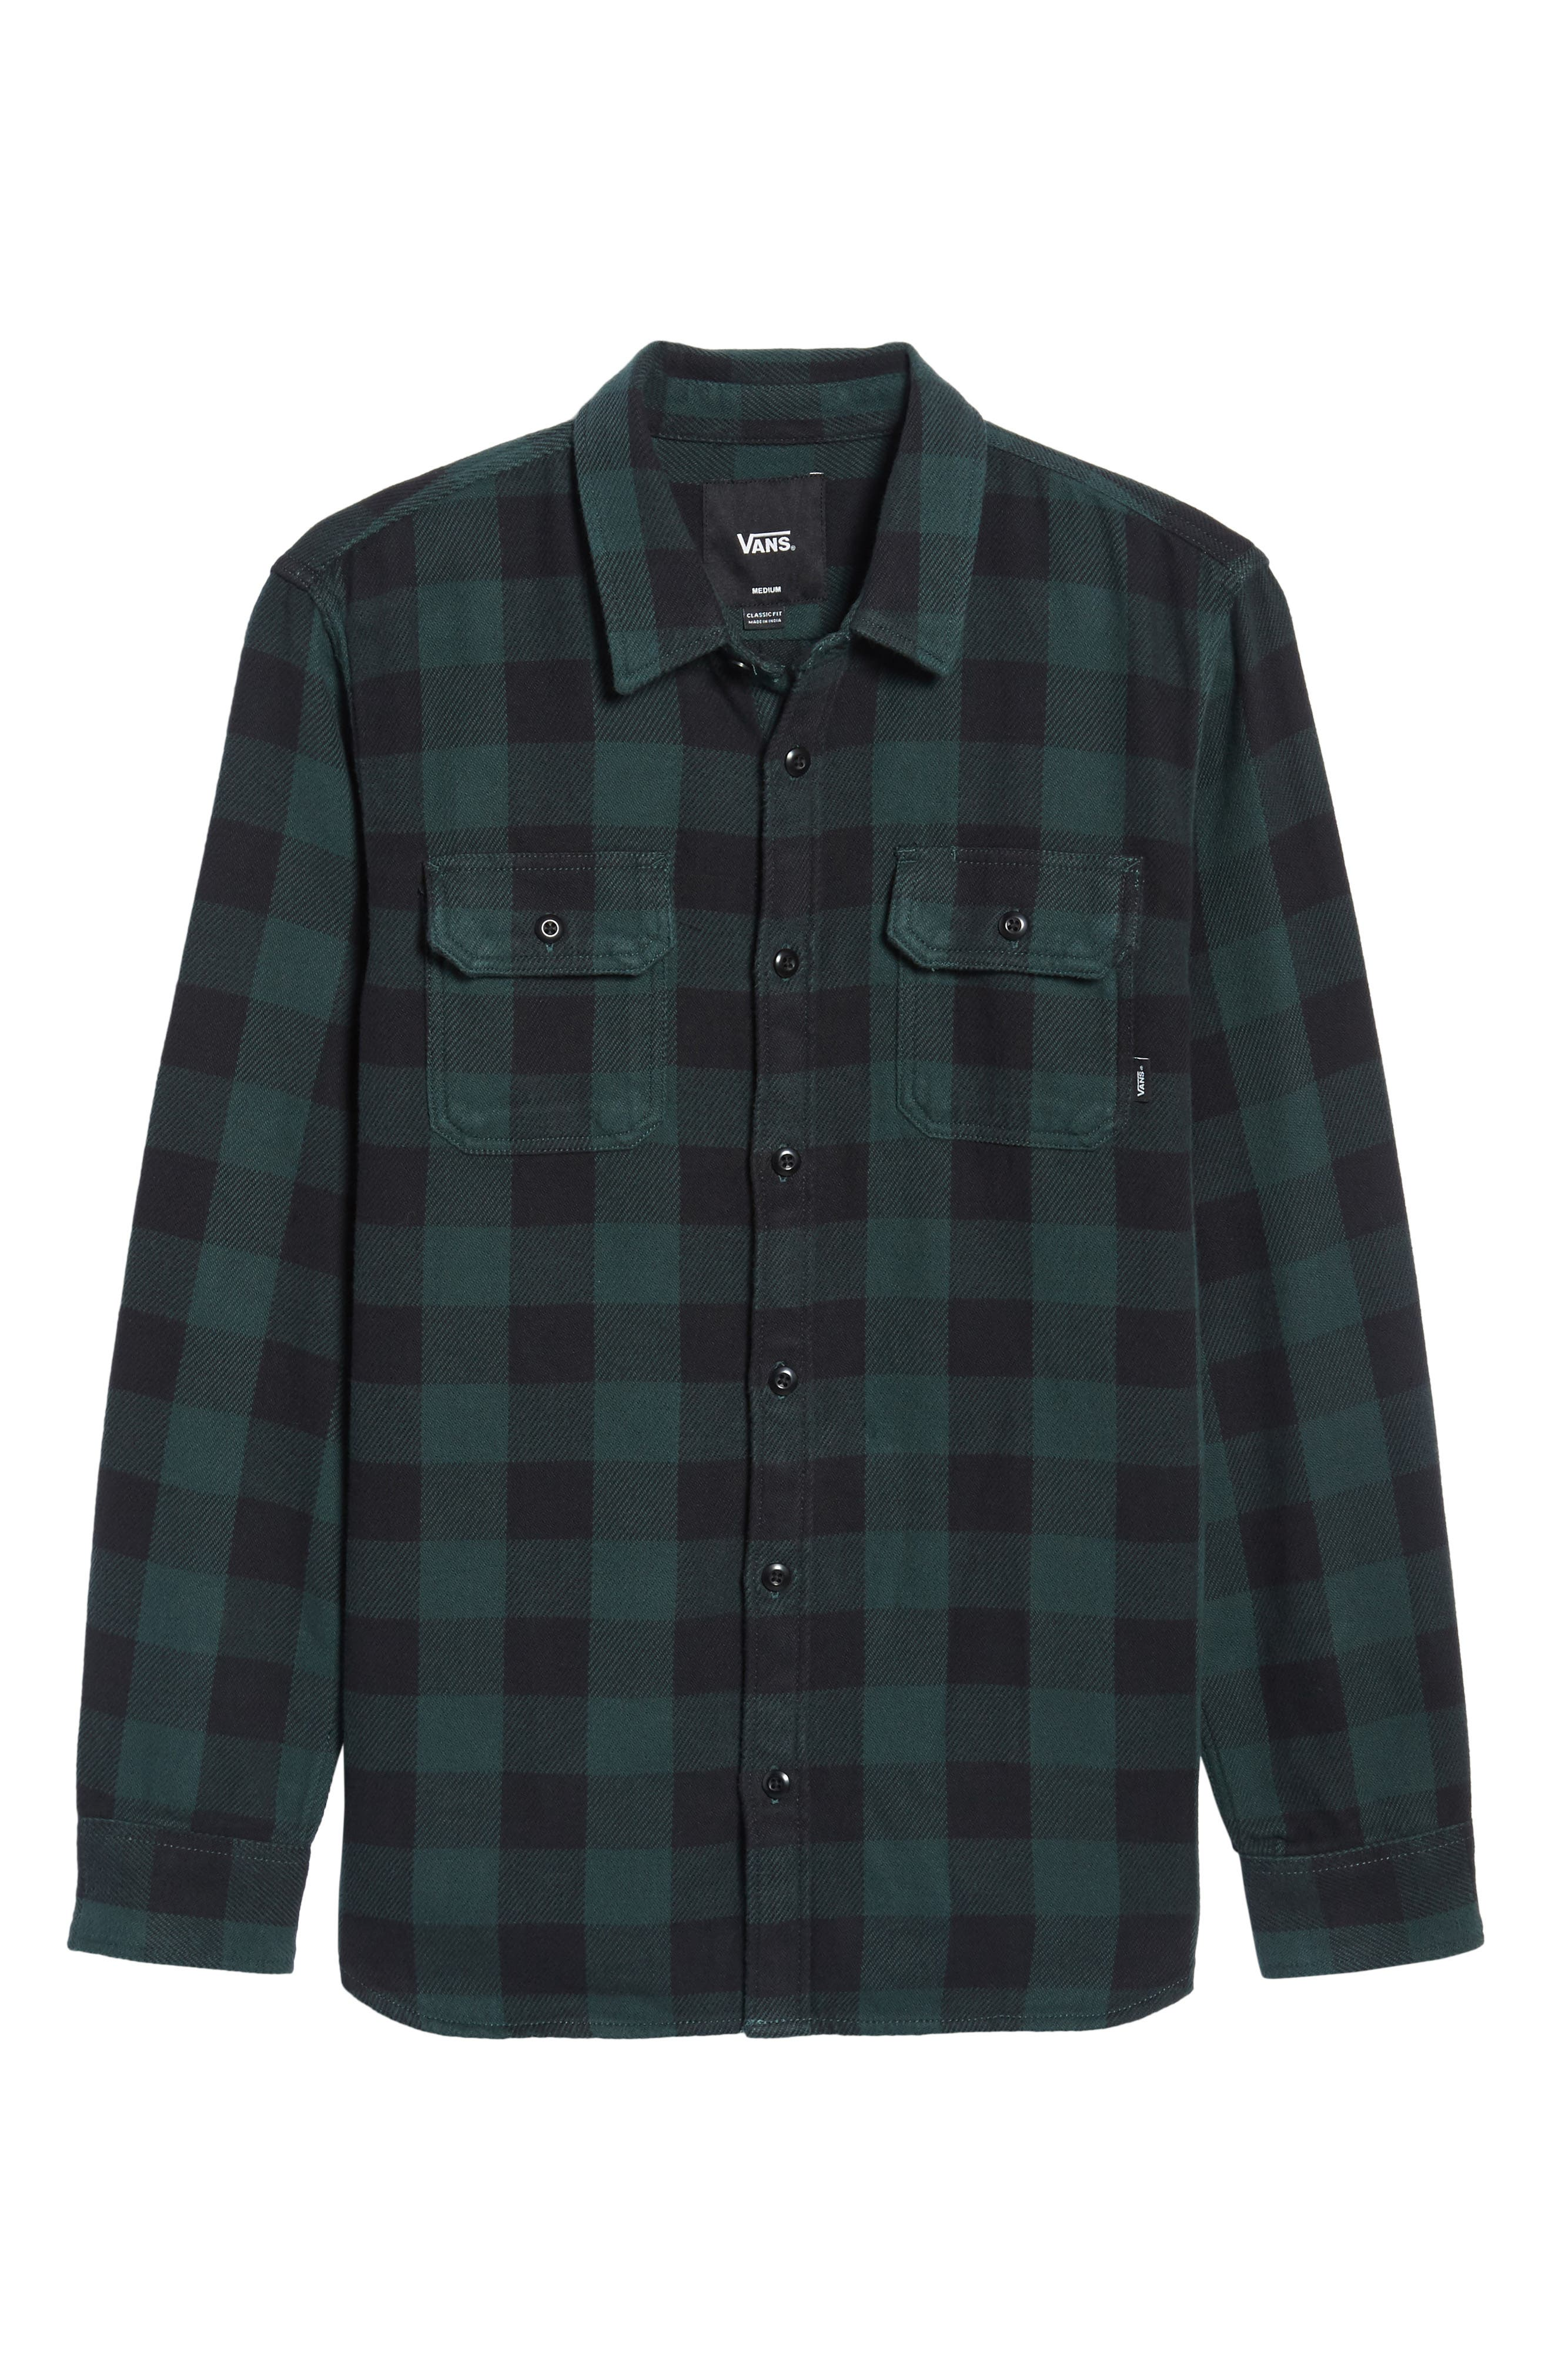 Wisner Plaid Shirt,                             Alternate thumbnail 6, color,                             001